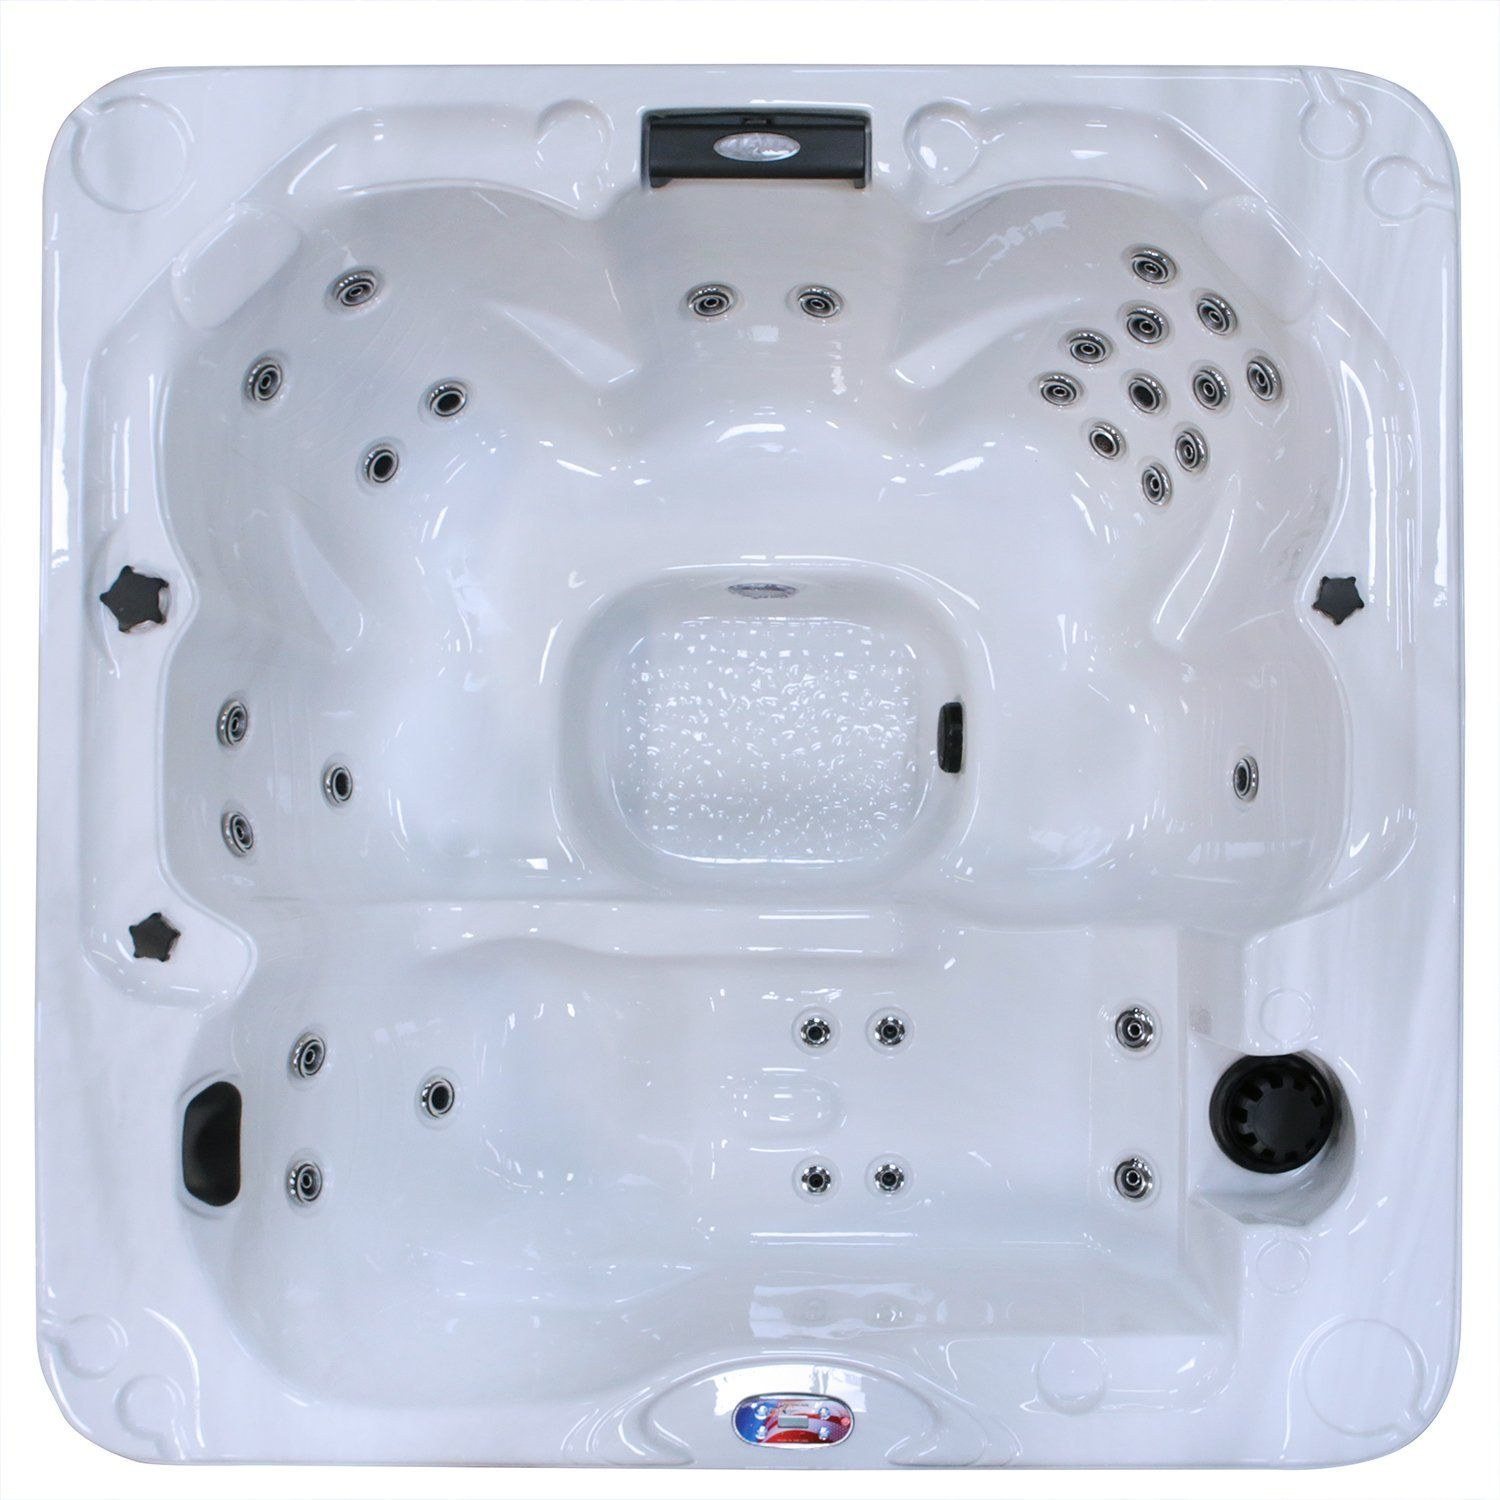 stainless steel hot tub prices   L.I.H. Gardening Start Small ...